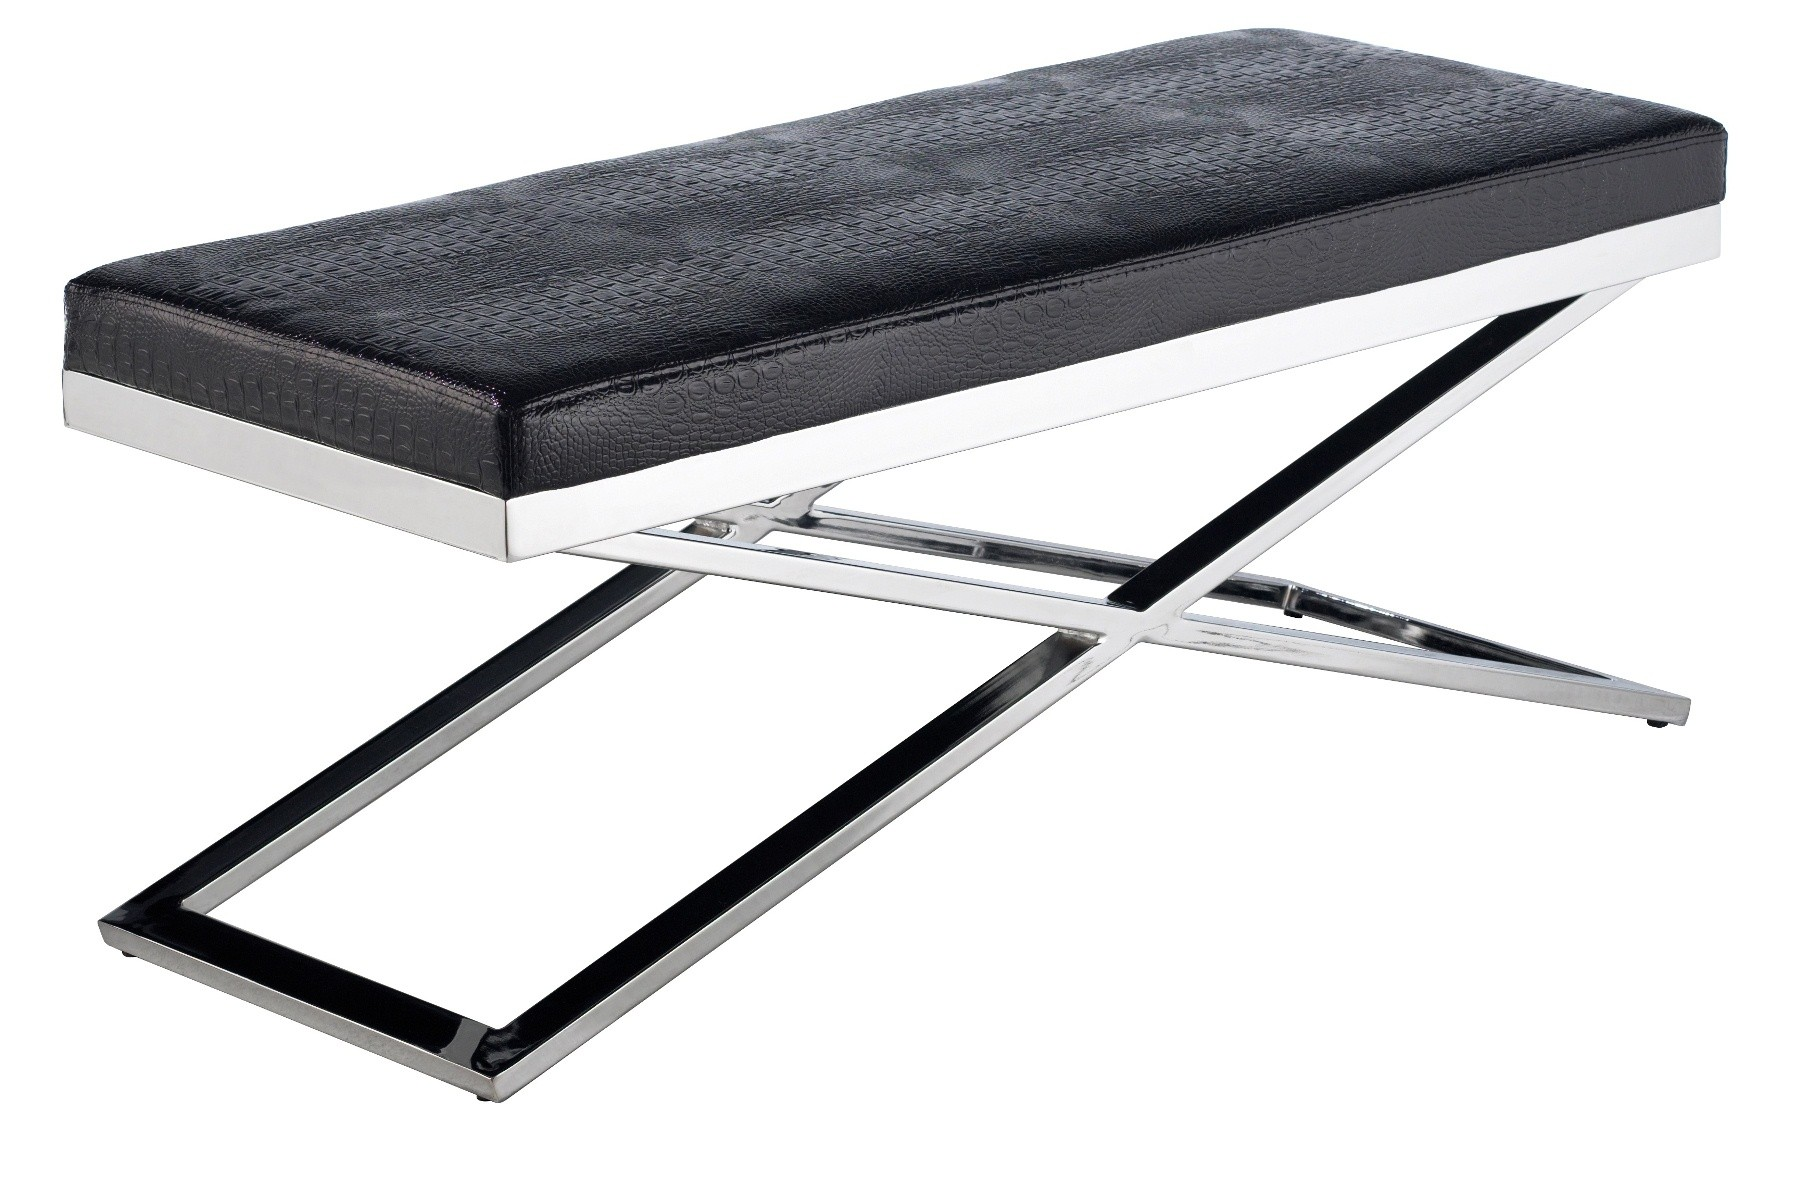 Crawford Black X Base Crocodile Bench From Sunpan 85962 Coleman Furniture